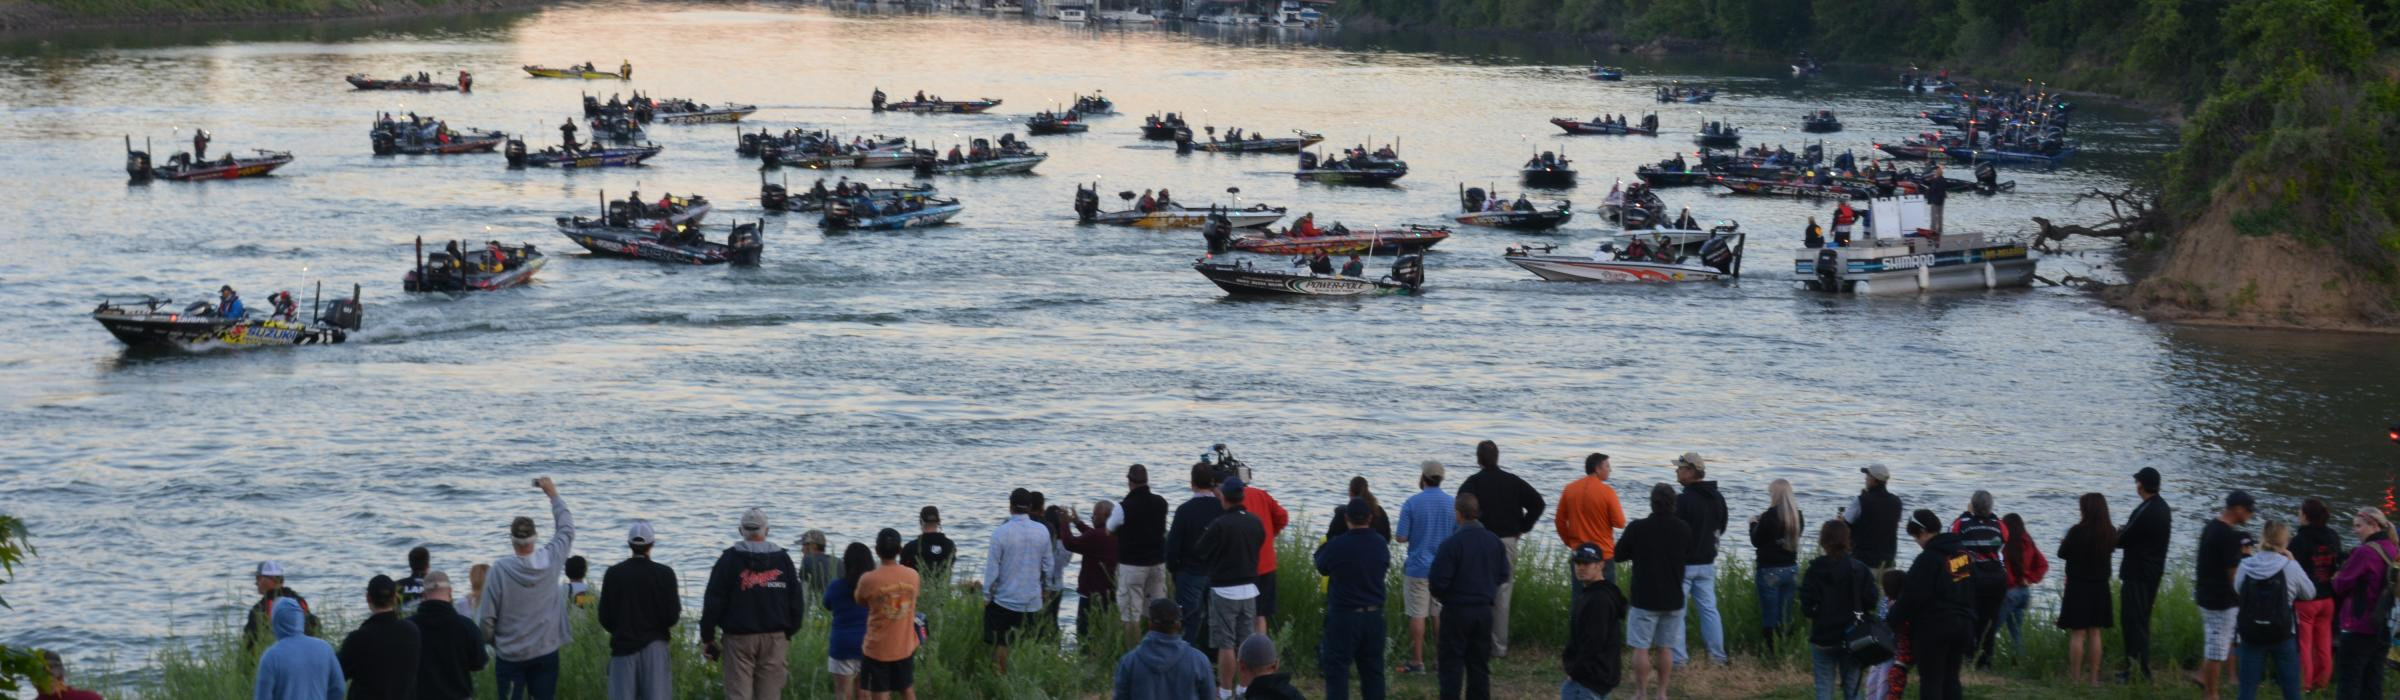 The Bassmaster Elite Series came to Sacramento in 2015 and started by Discovery Park. Taken 2015.